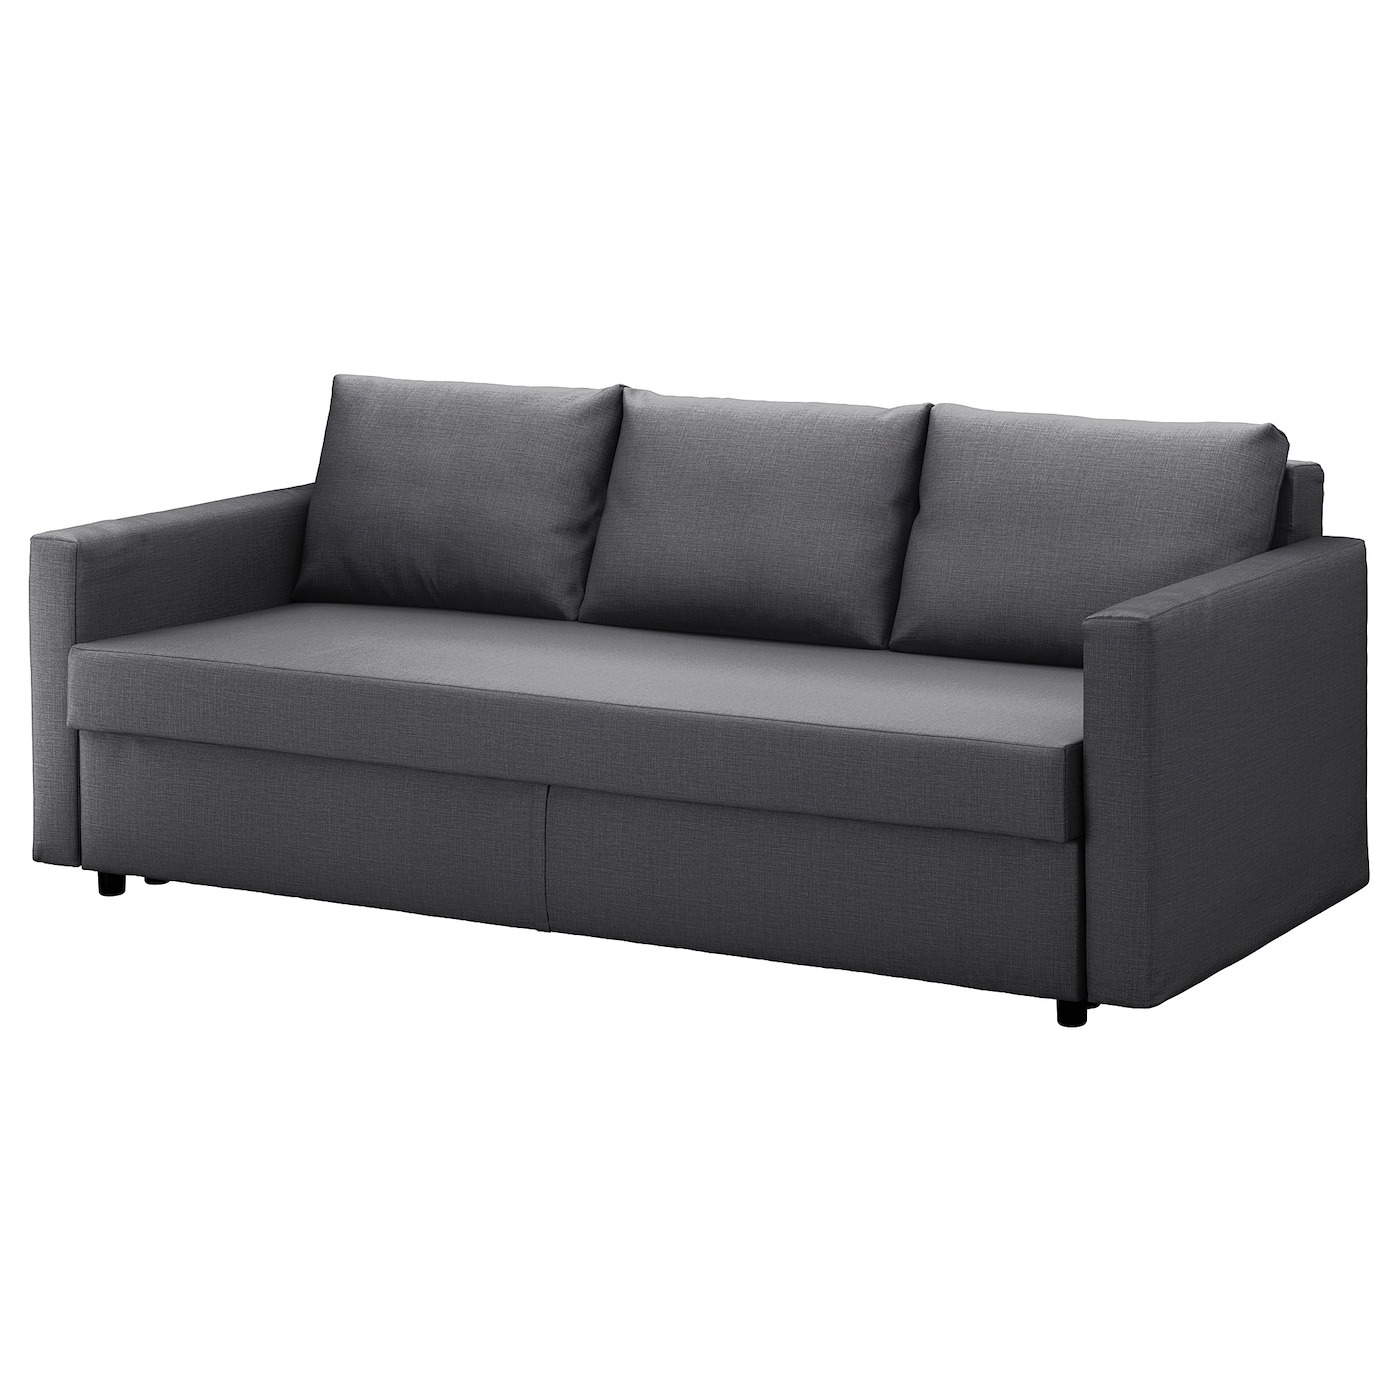 sofa beds corner sofa beds futons ikea rh ikea com Sofa Beds for Small Spaces ikea fabric sofa bed